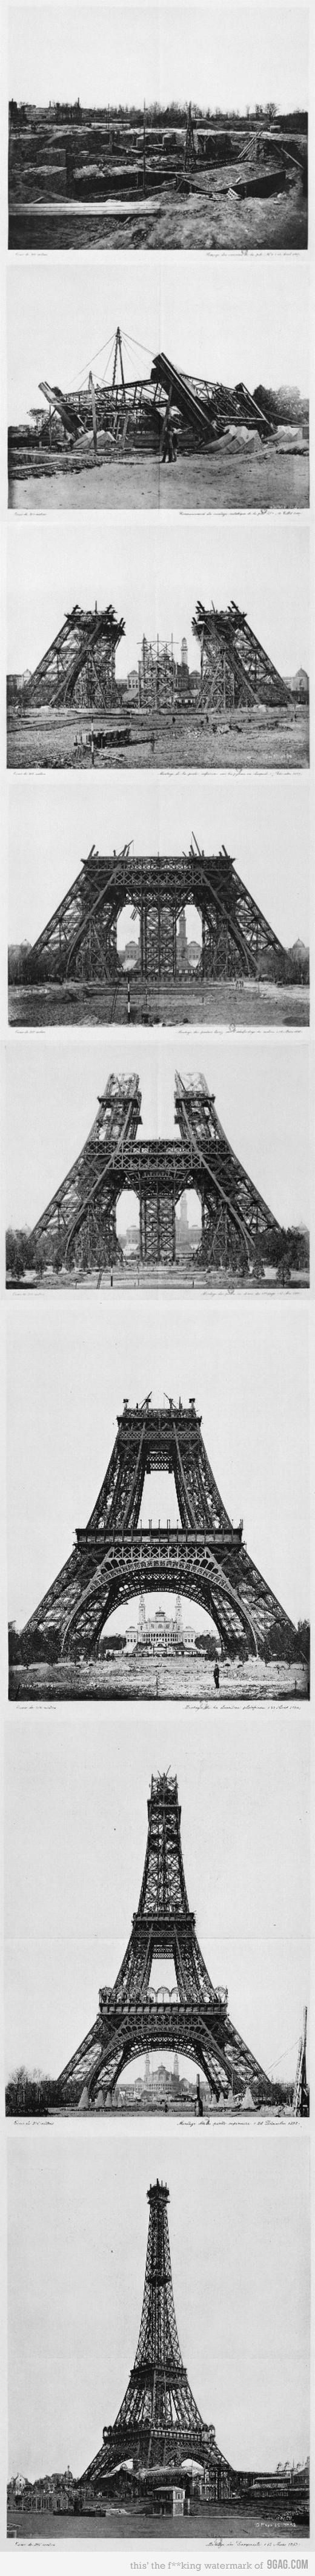 eiffel towers towers and tour eiffel on pinterest. Black Bedroom Furniture Sets. Home Design Ideas